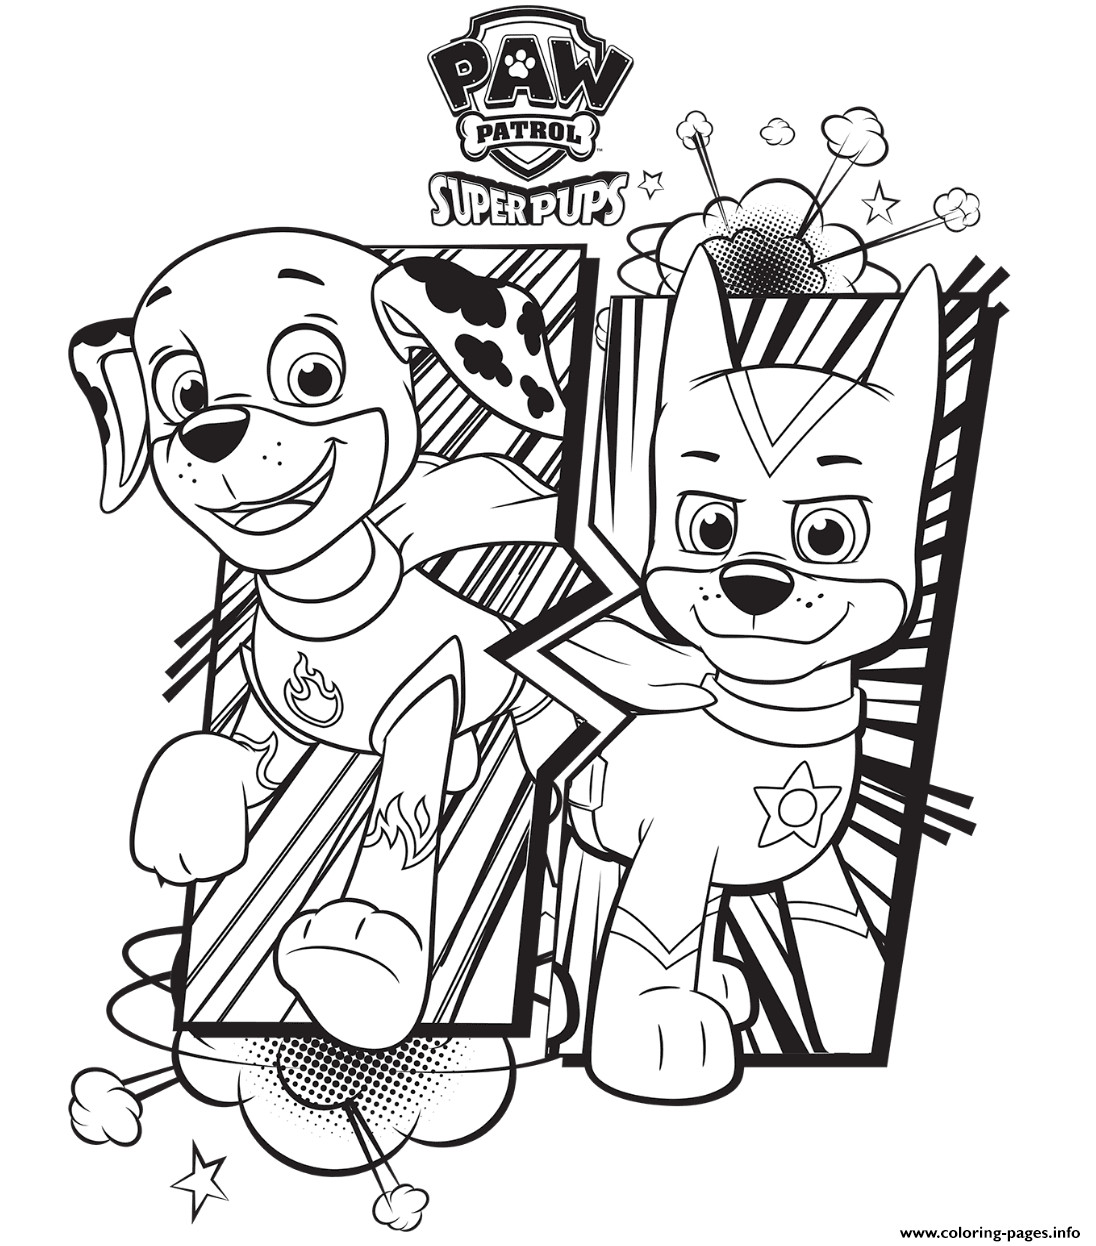 1096x1246 Coloring Pages Pet Patrol New Paw Printables Brilliant Printable